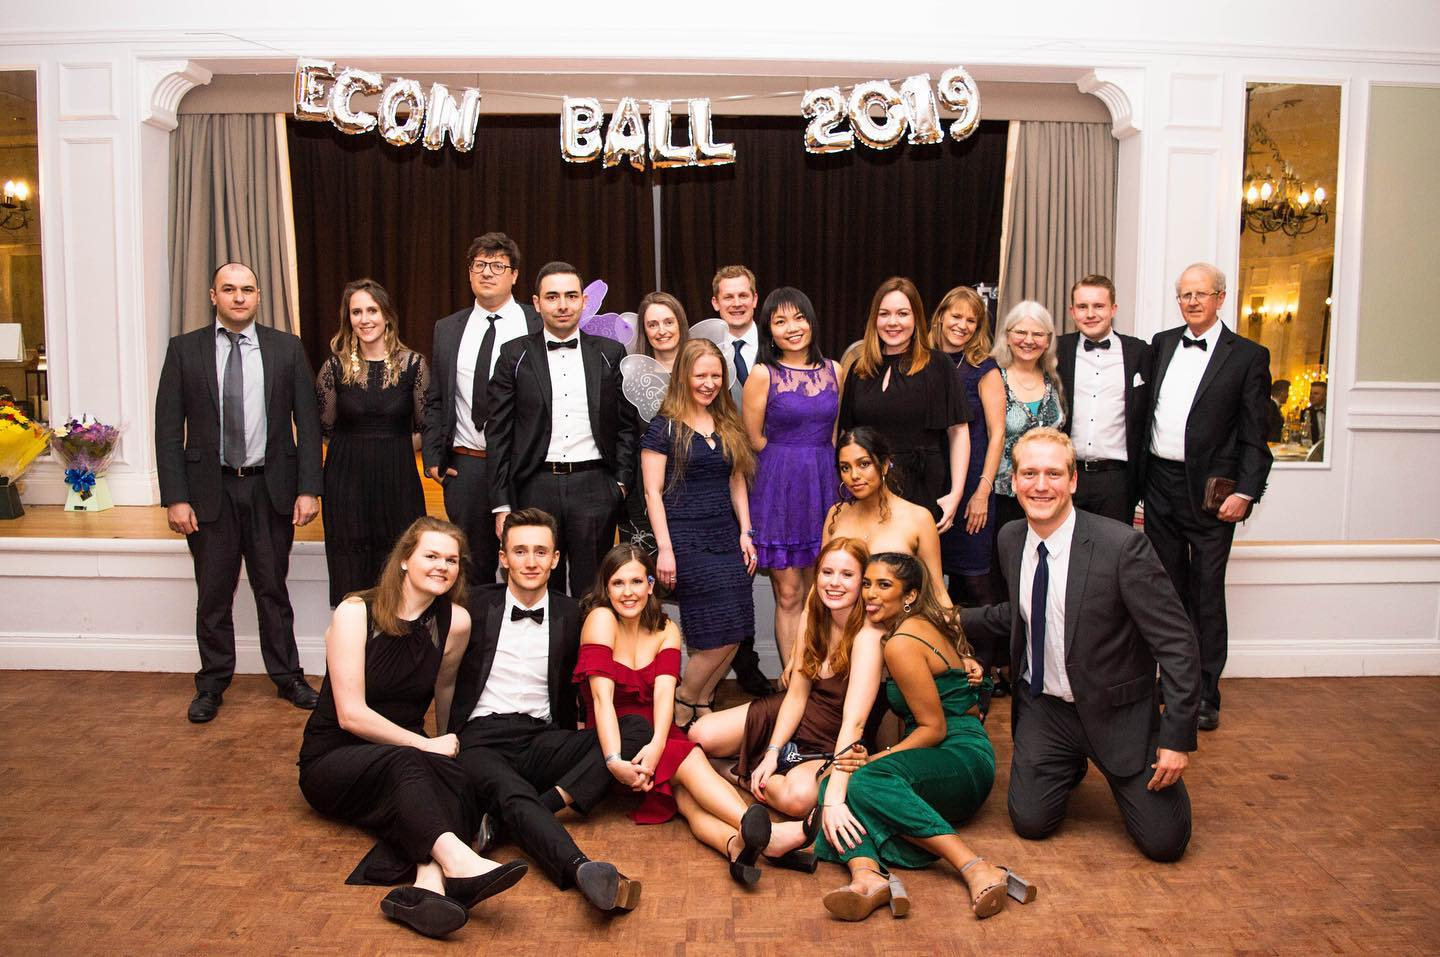 Students at the Economics Ball, 2019